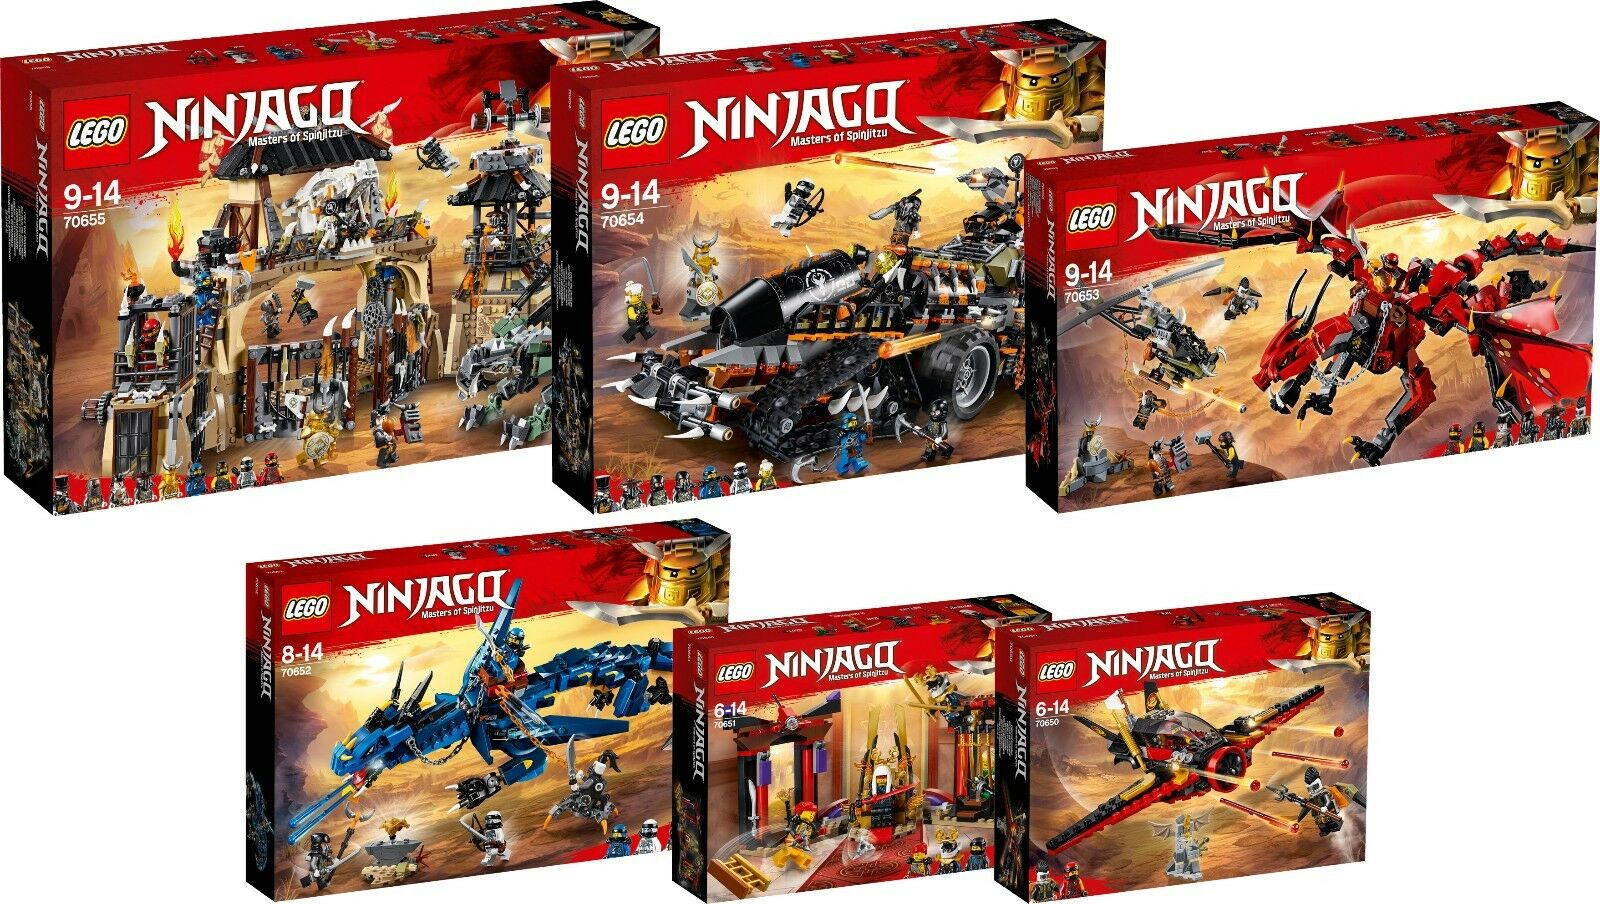 LEGO Ninjago 70655 70654 70653 70652 70651 70650 Dragon Super Set N6 18